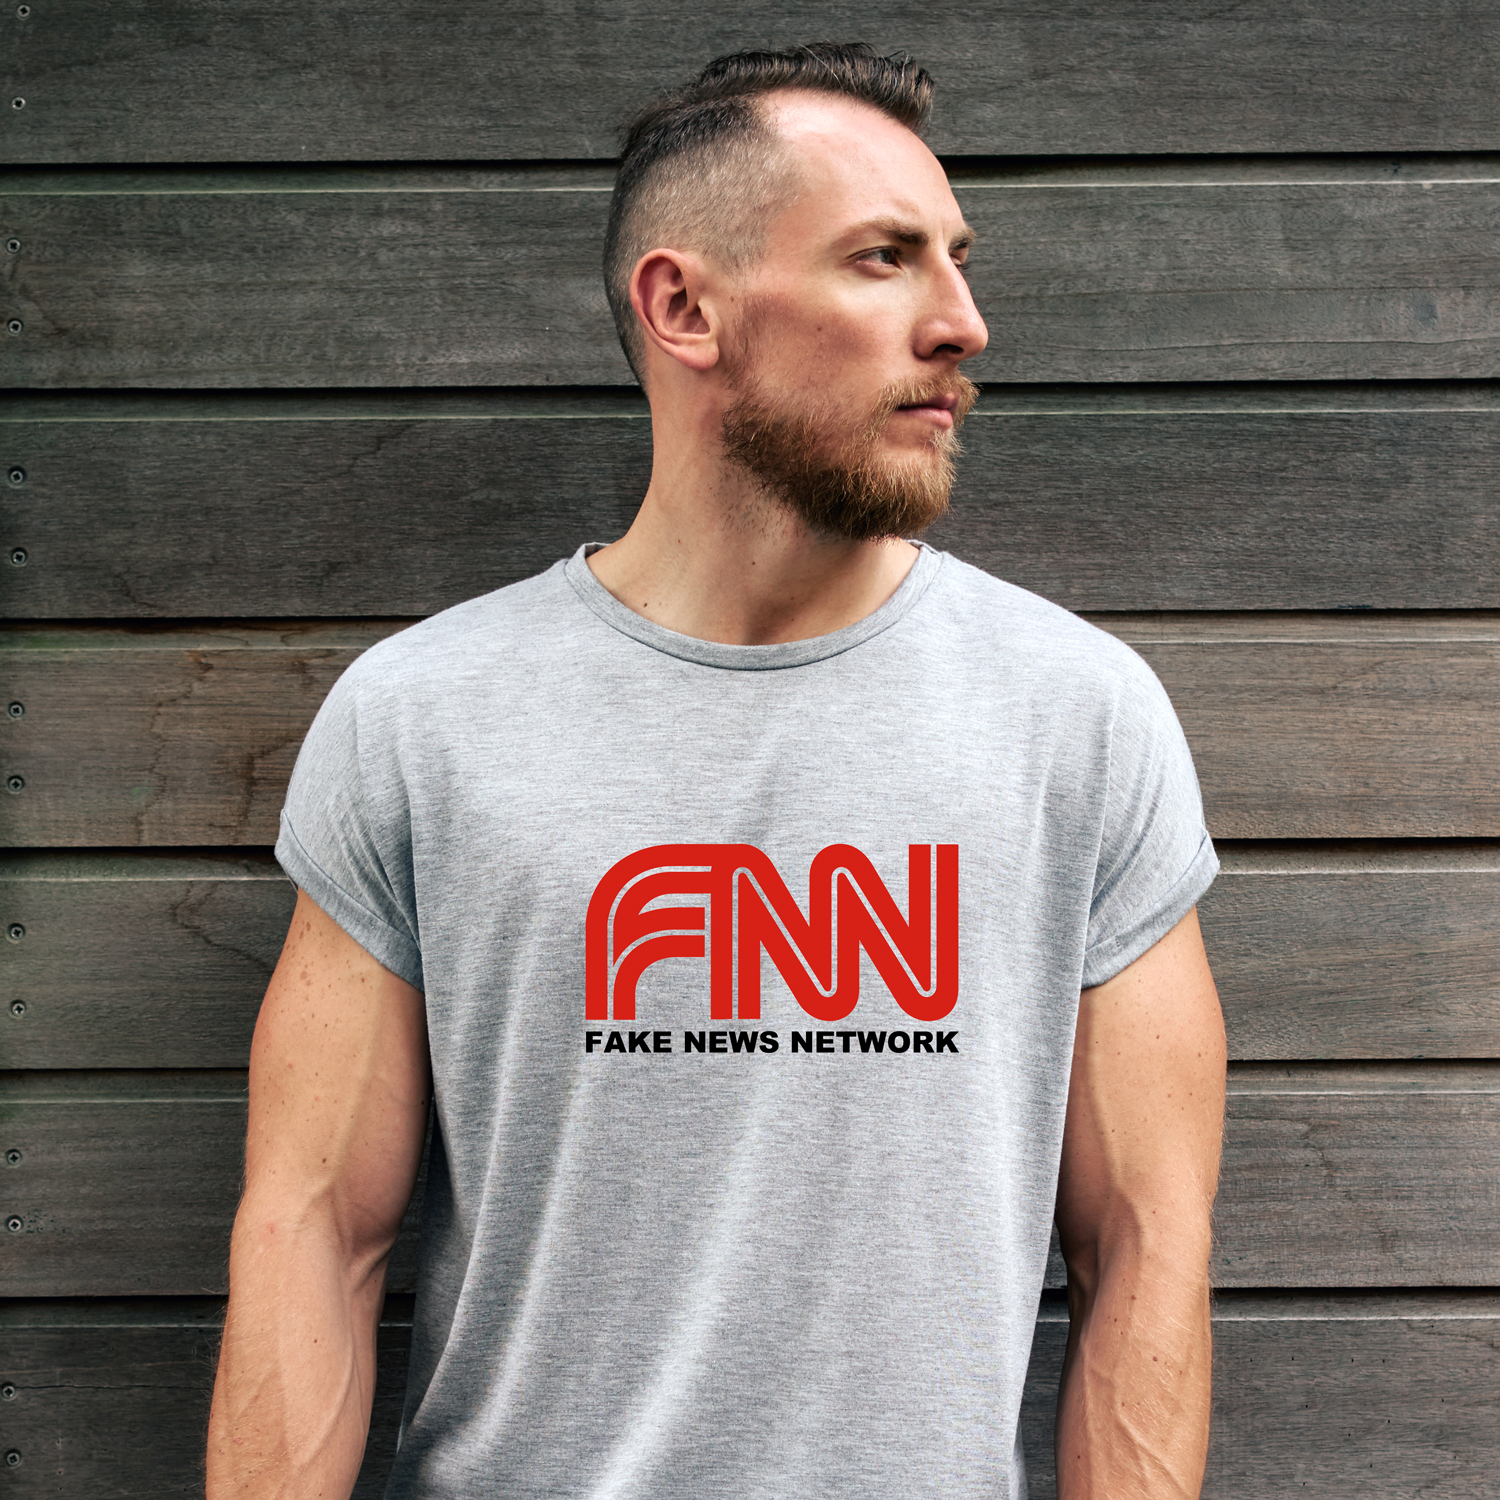 FNN Fake News Network T-Shirt (MADE IN THE USA)